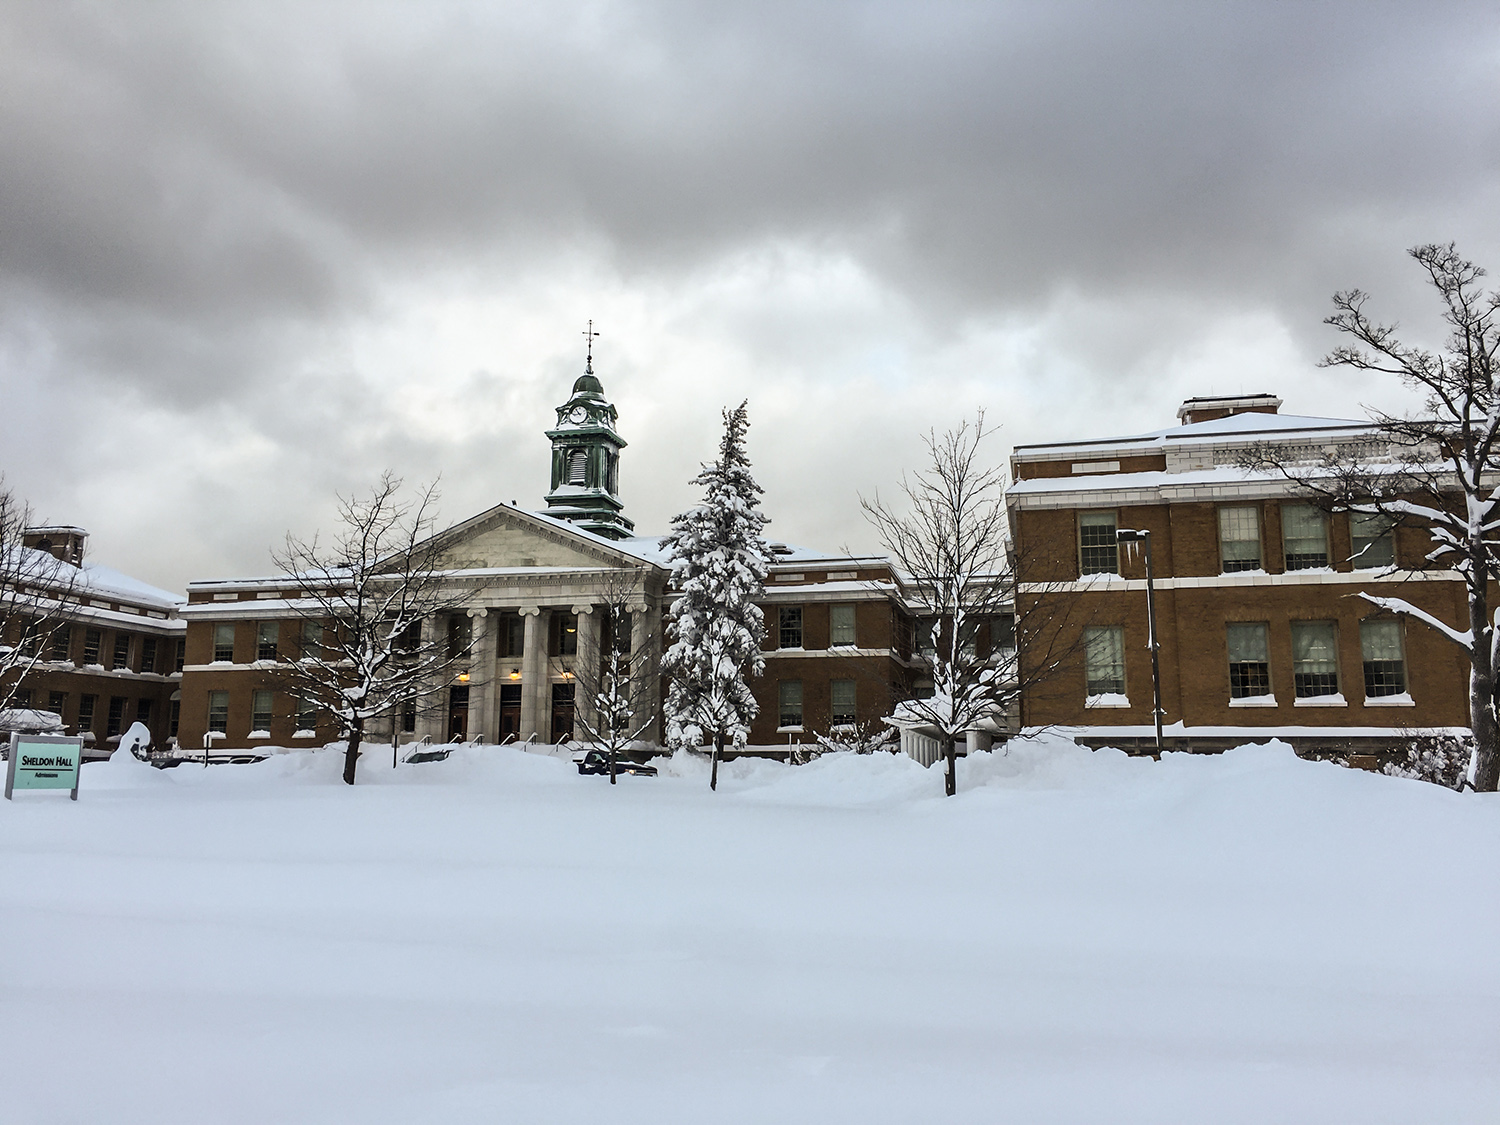 Sheldon Hall sits among snowy landscape